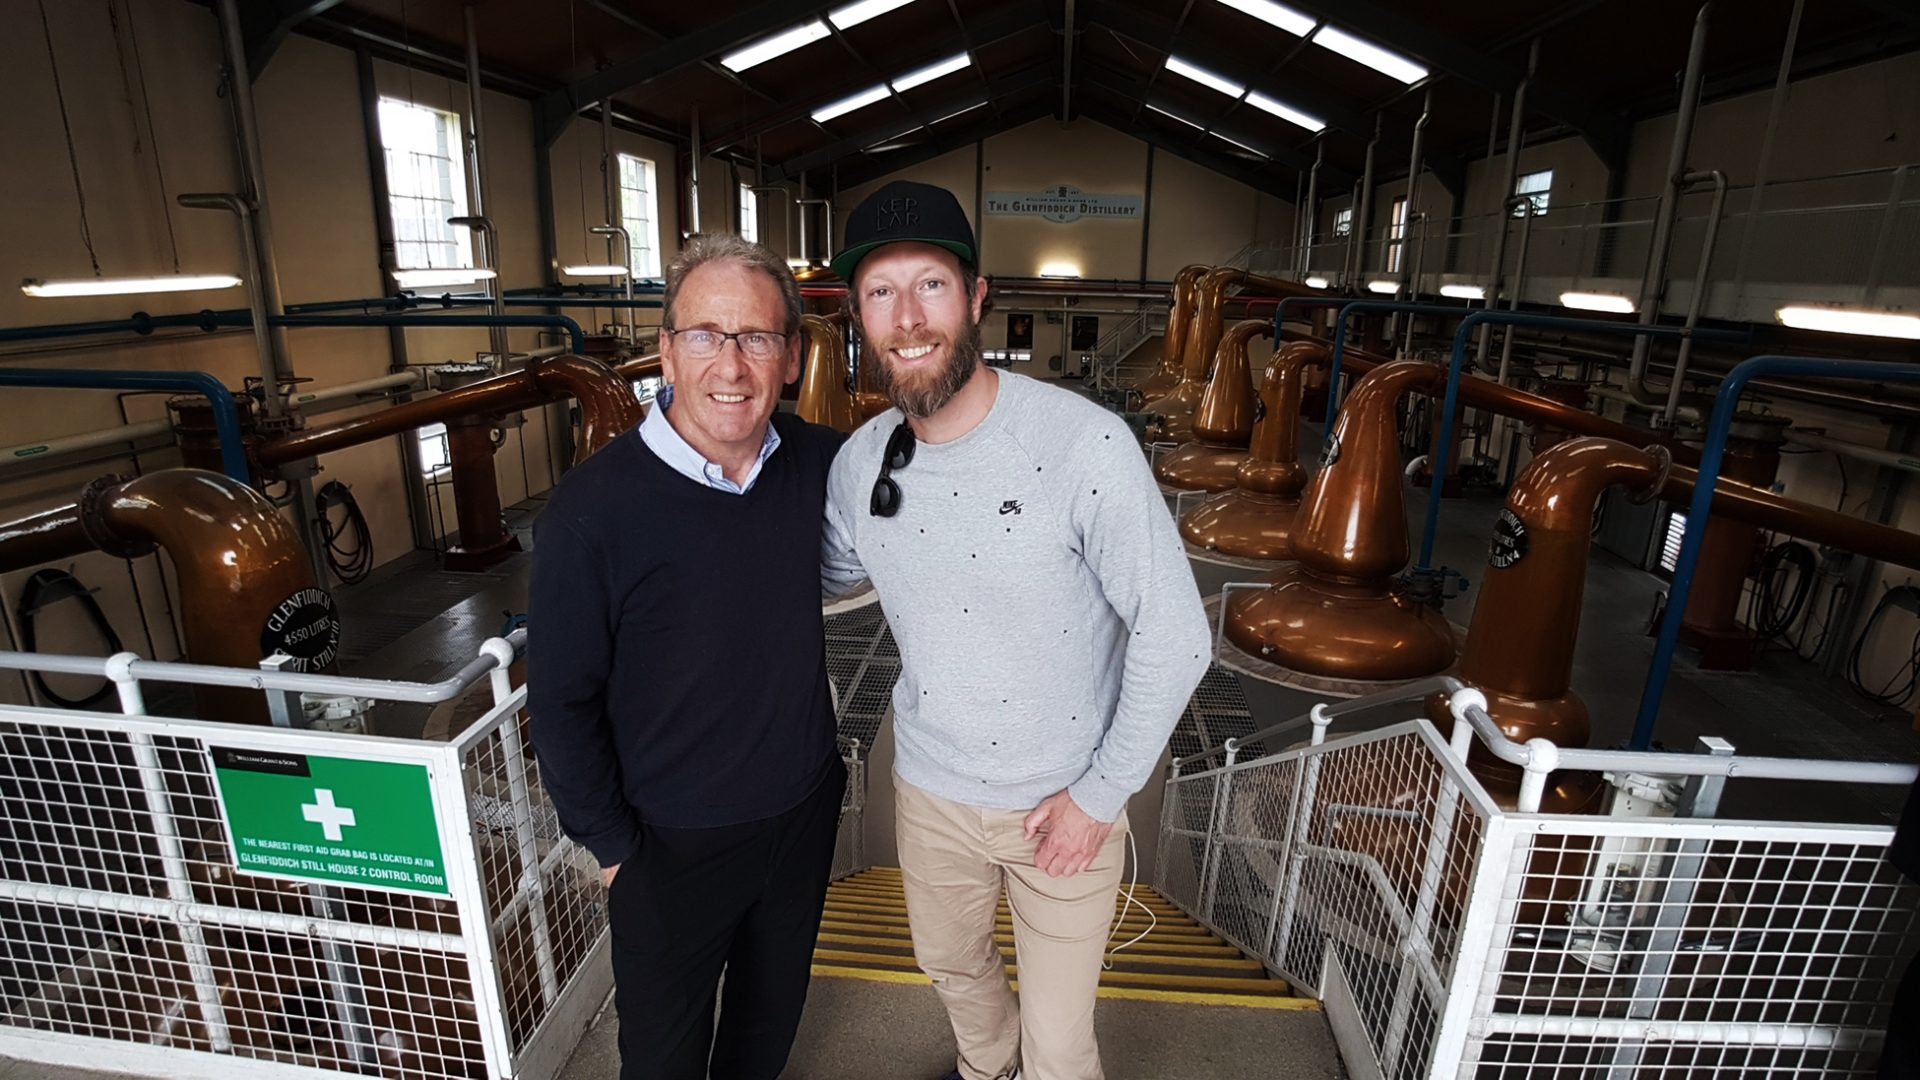 At the Glenfiddich distillery with Ian Millar, prestige manager at The Balvenie